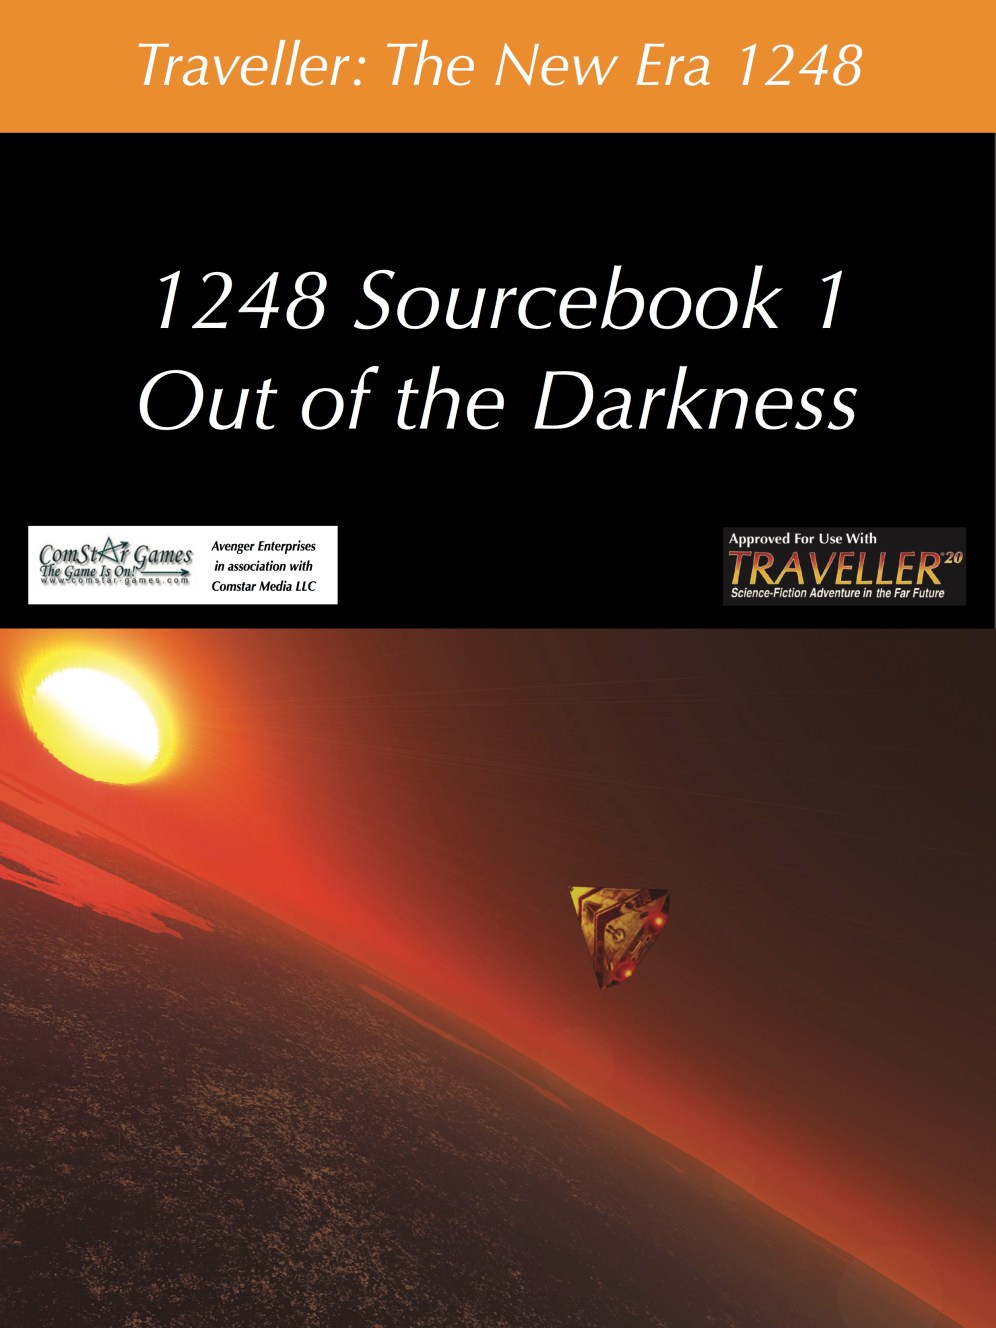 1248 Sourcebook 1 Out of the Darkness